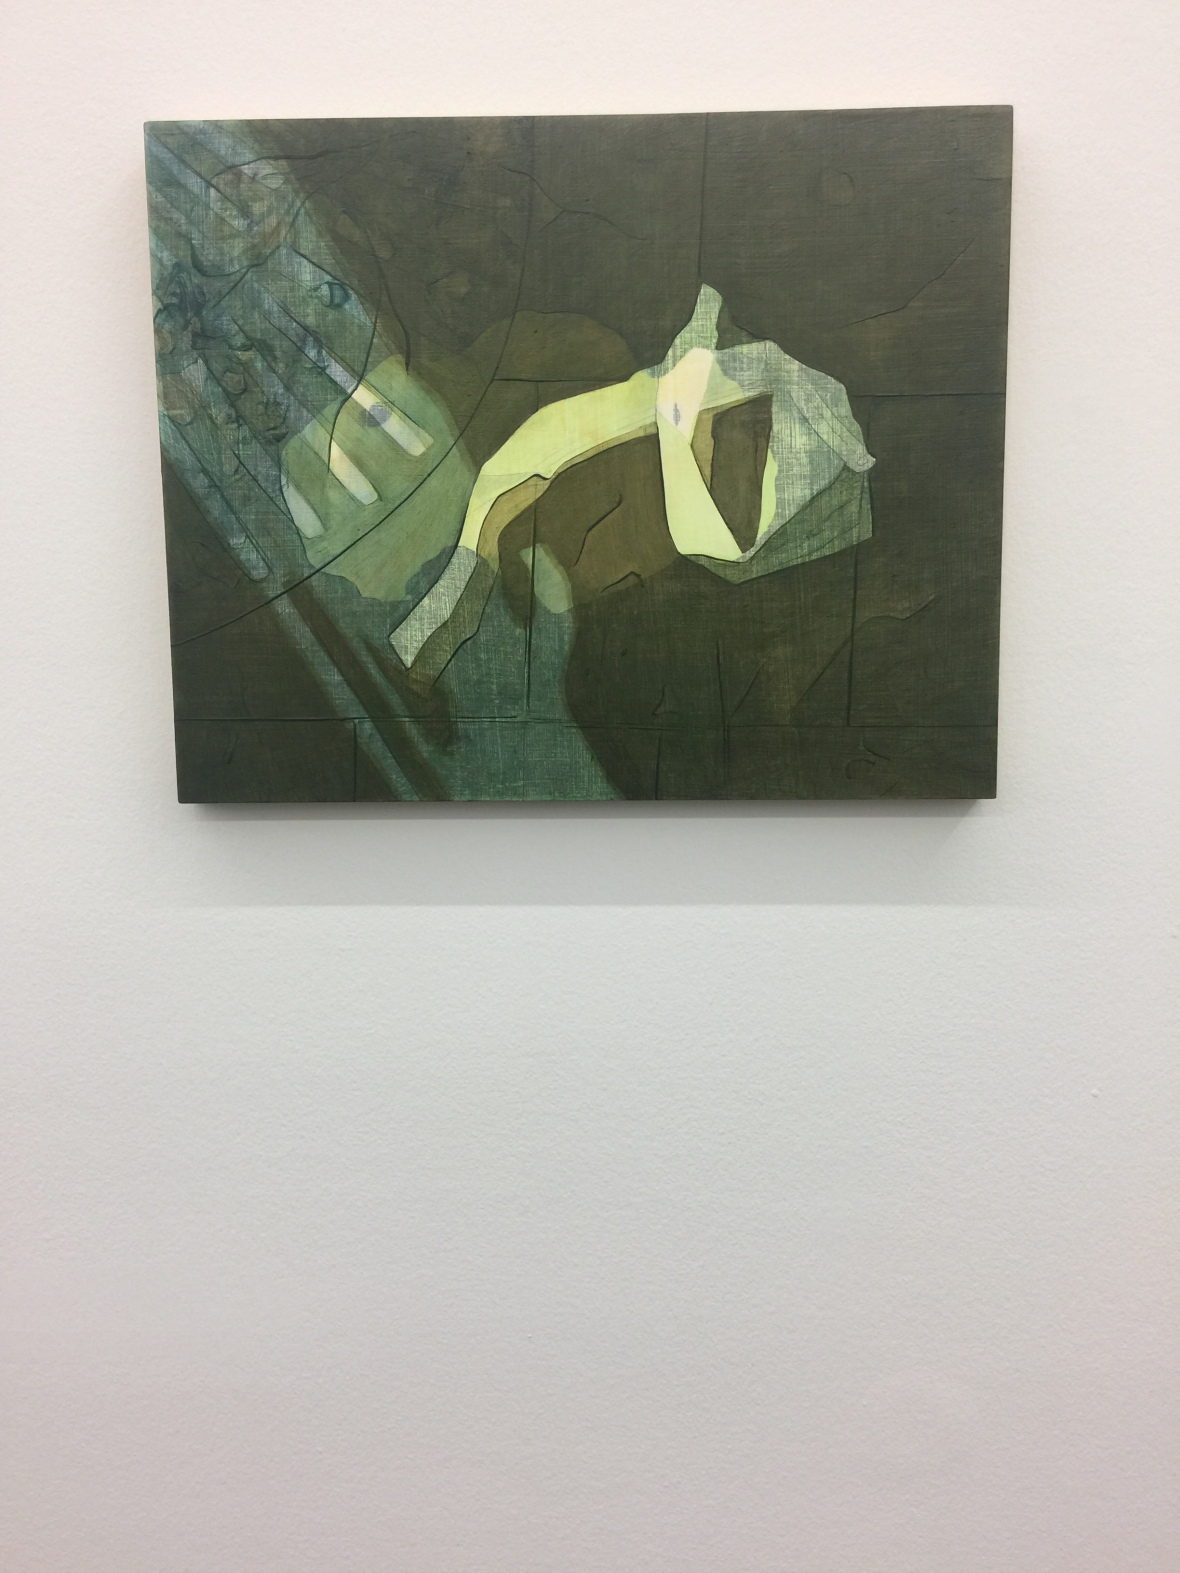 Iulia Nistor at Galeria Plan B